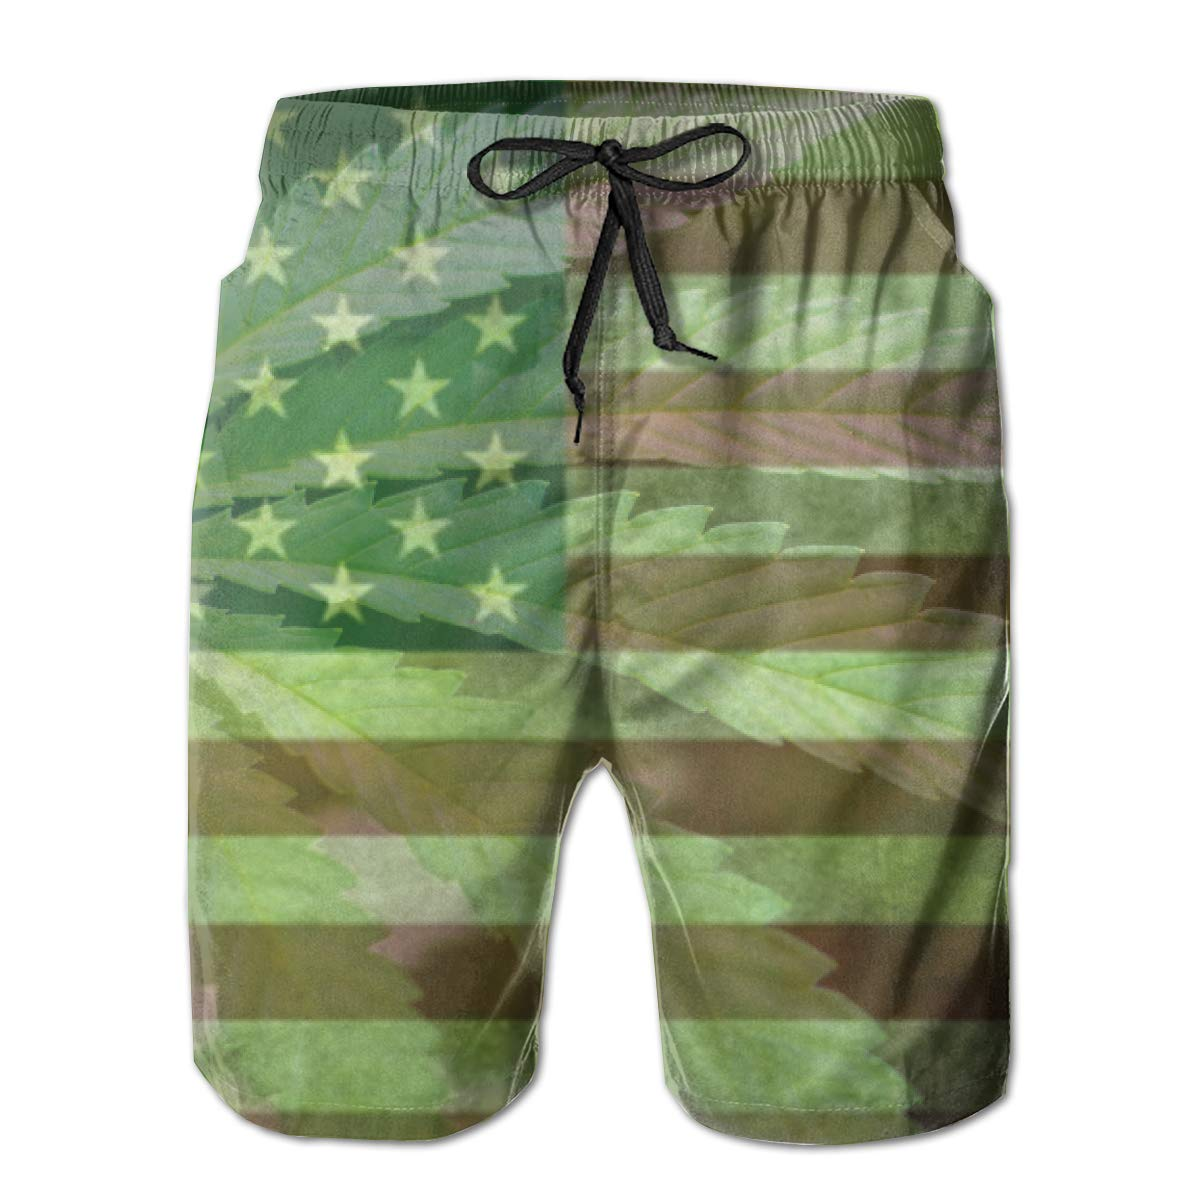 YongColer Mens Quick Dry Swim Trunks Board Shorts for Running Swimming Surfing